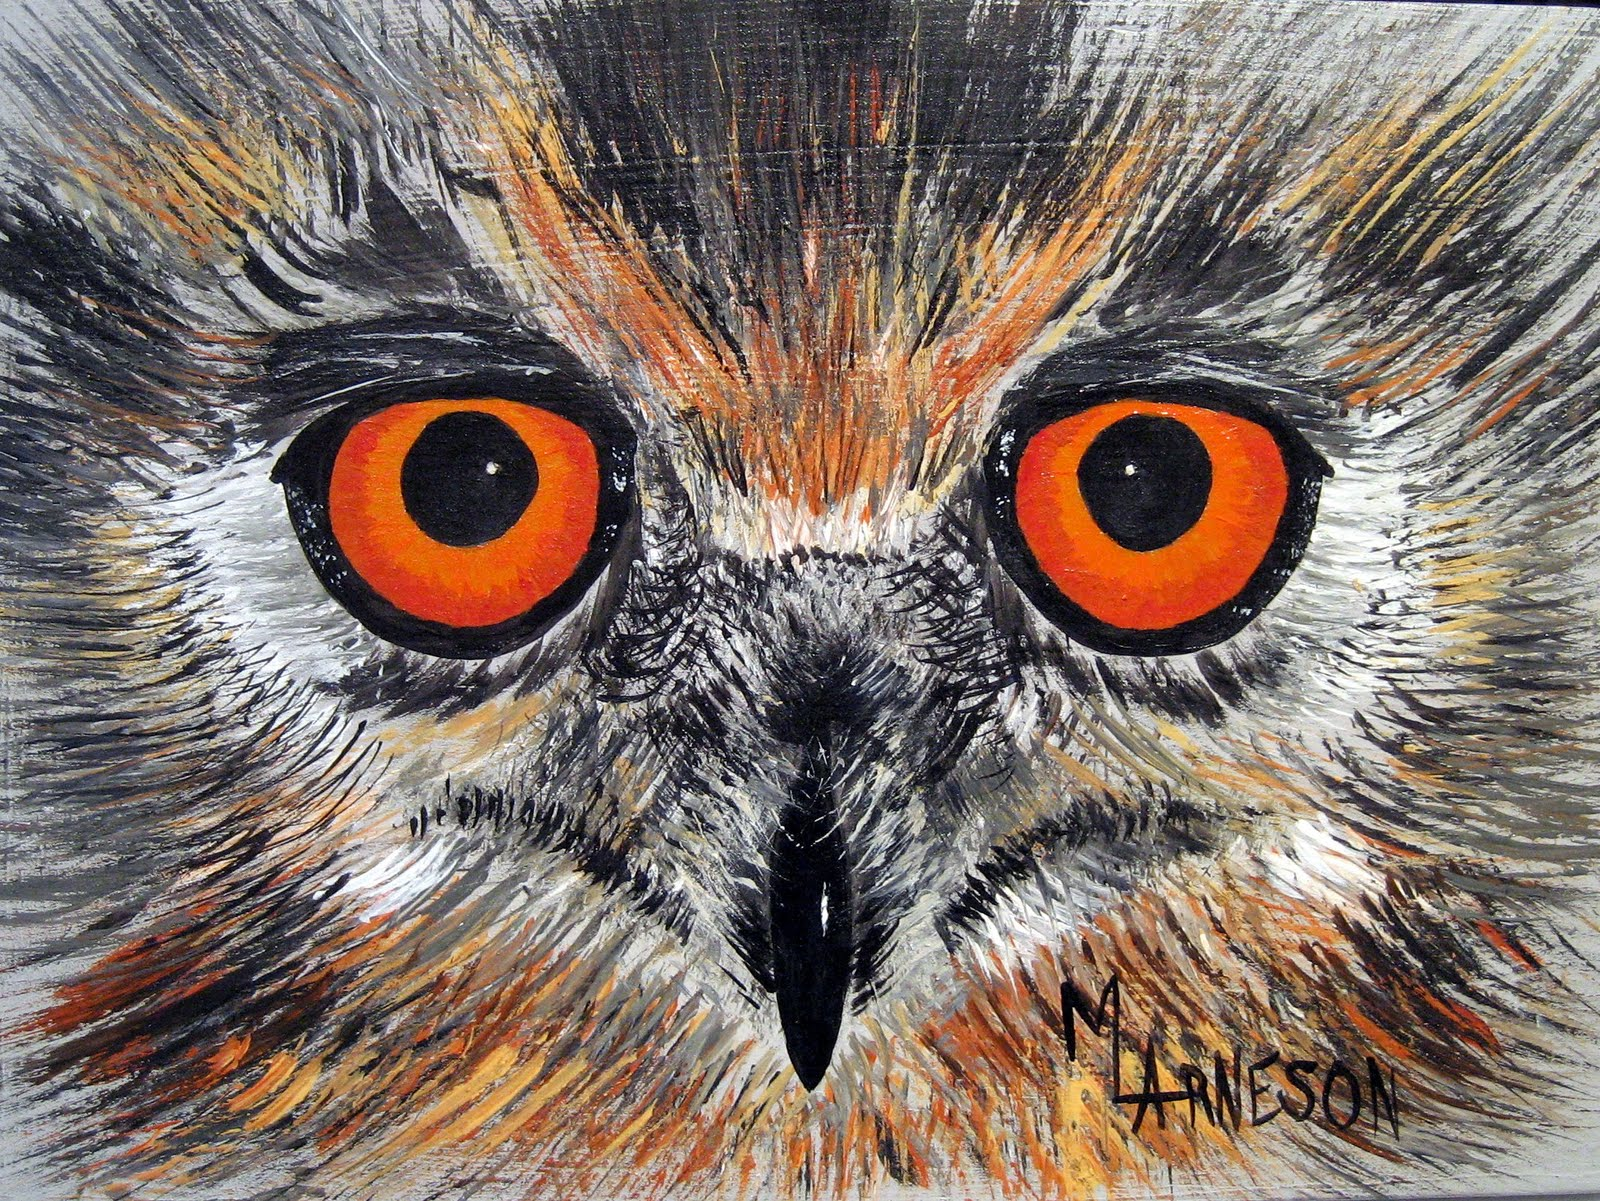 Powered by RotlichtadresseOwl Eyes Paintings